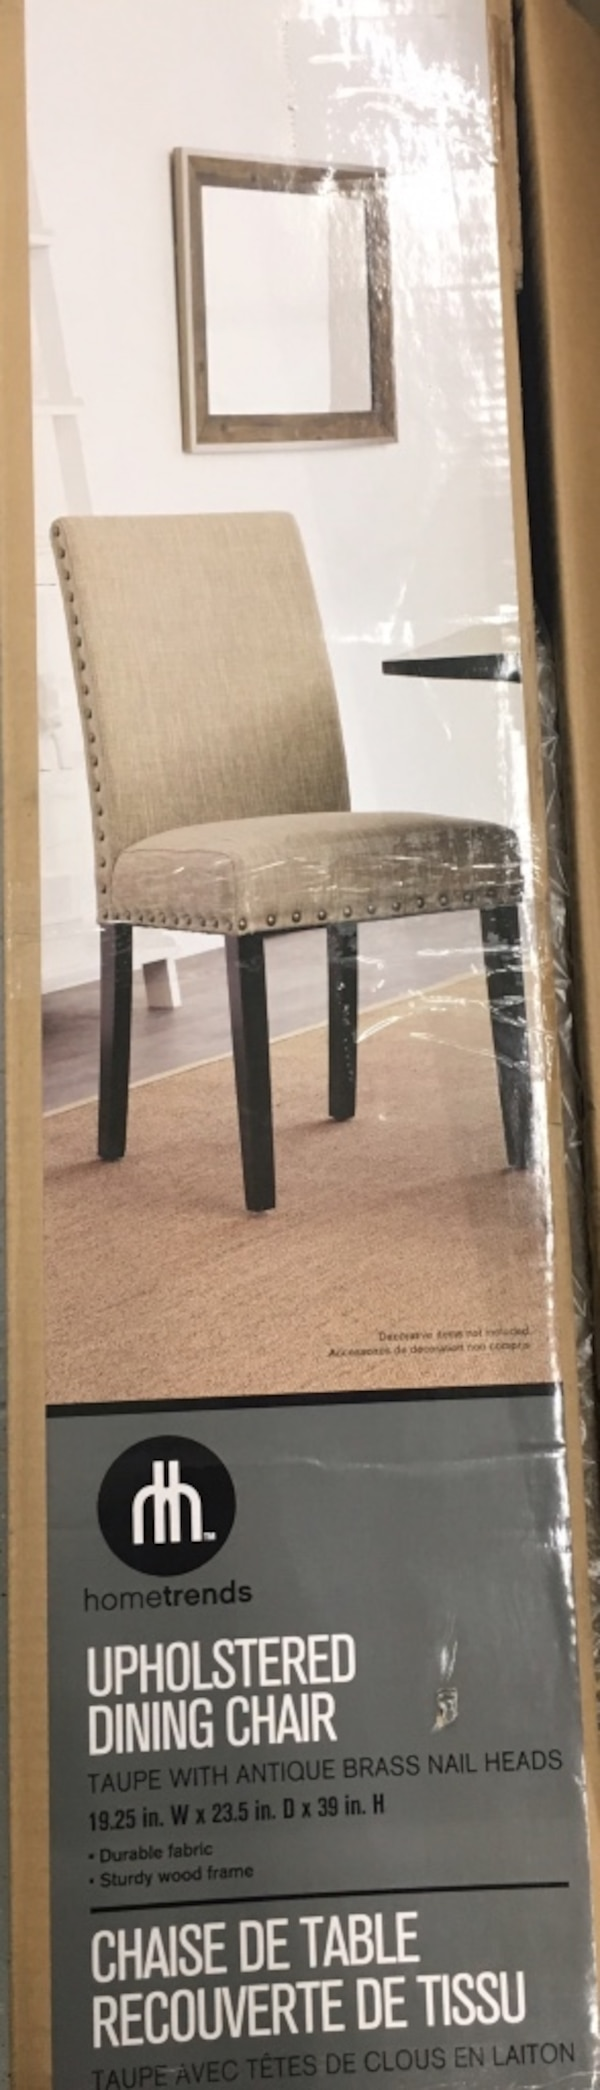 (1) New Mainstays Upholstered Dining Chair- Taupe 956b0416-7fc1-498d-8c01-38d20e8e8230